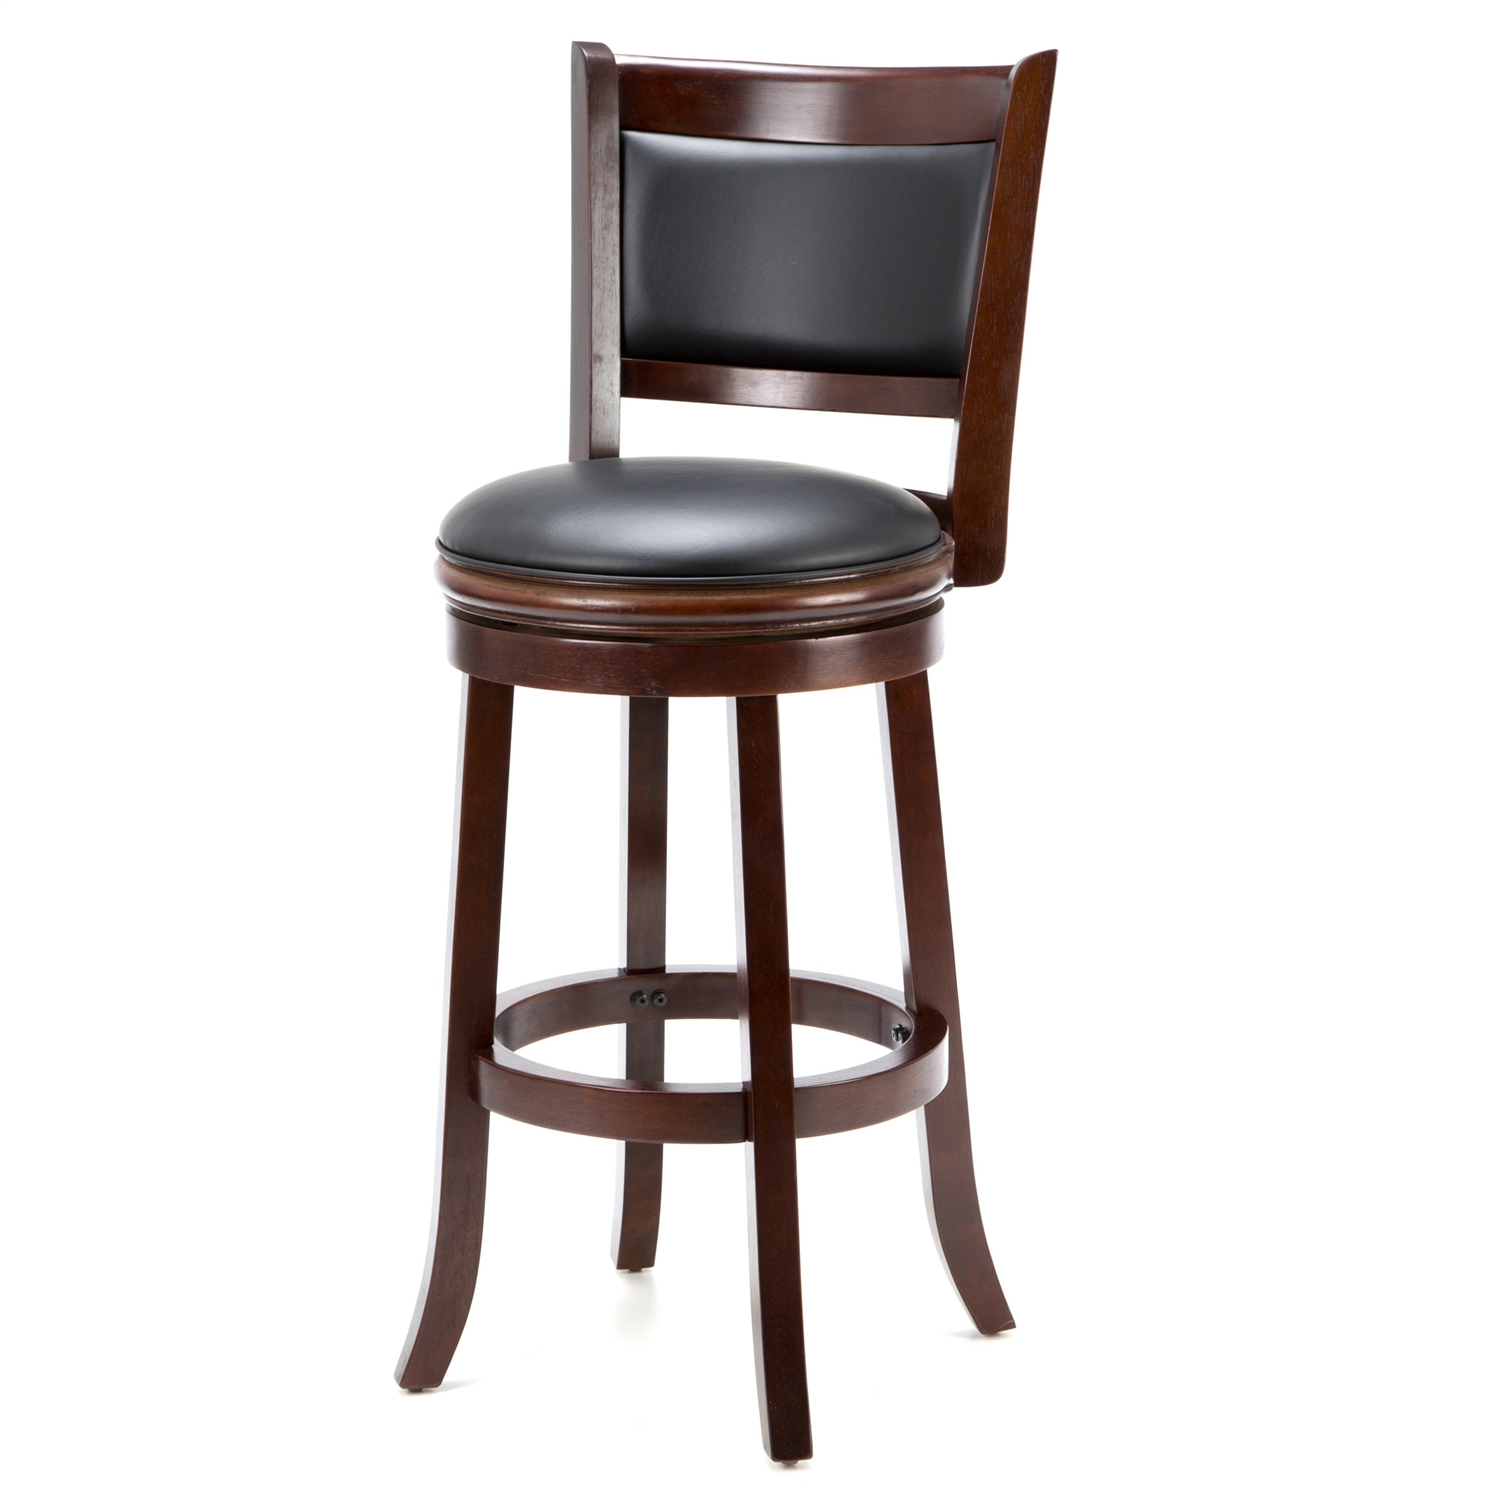 Accent your bar space with this classy and stylish Cherry 29-inch Solid Wood Bar Stool with Faux Leather Swivel Seat. Its attractive and durable design is a perfect fit for all decor settings. It occupies less space and proves highly useful when you have guests at home.This stool has a solid hardwood construction that ensures it lasts for many years to come. The lustrous finish lends it a timeless look and adds to the appeal. It is fitted with a rich faux leather seat with high density foam to offer comfortable seating and enhance its appearance. It has flawlessly crafted French style legs with tempered bottoms. The steel ball bearings keeps it steady. The swivel ensures unrestricted movement. While the full ring footrest lends more strength and stability. The back support makes the seating experience more relaxed.The bar stool has a weight capacity of 250lbs. Its seat height is 29''. The overall dimensions of the bar stool are 43.5'' in height, 17'' in width and 18'' in depth. It is available in different shades to best suit your decor. This stool is best paired with an elegant bar table to complete the sophisticated look of your decor.